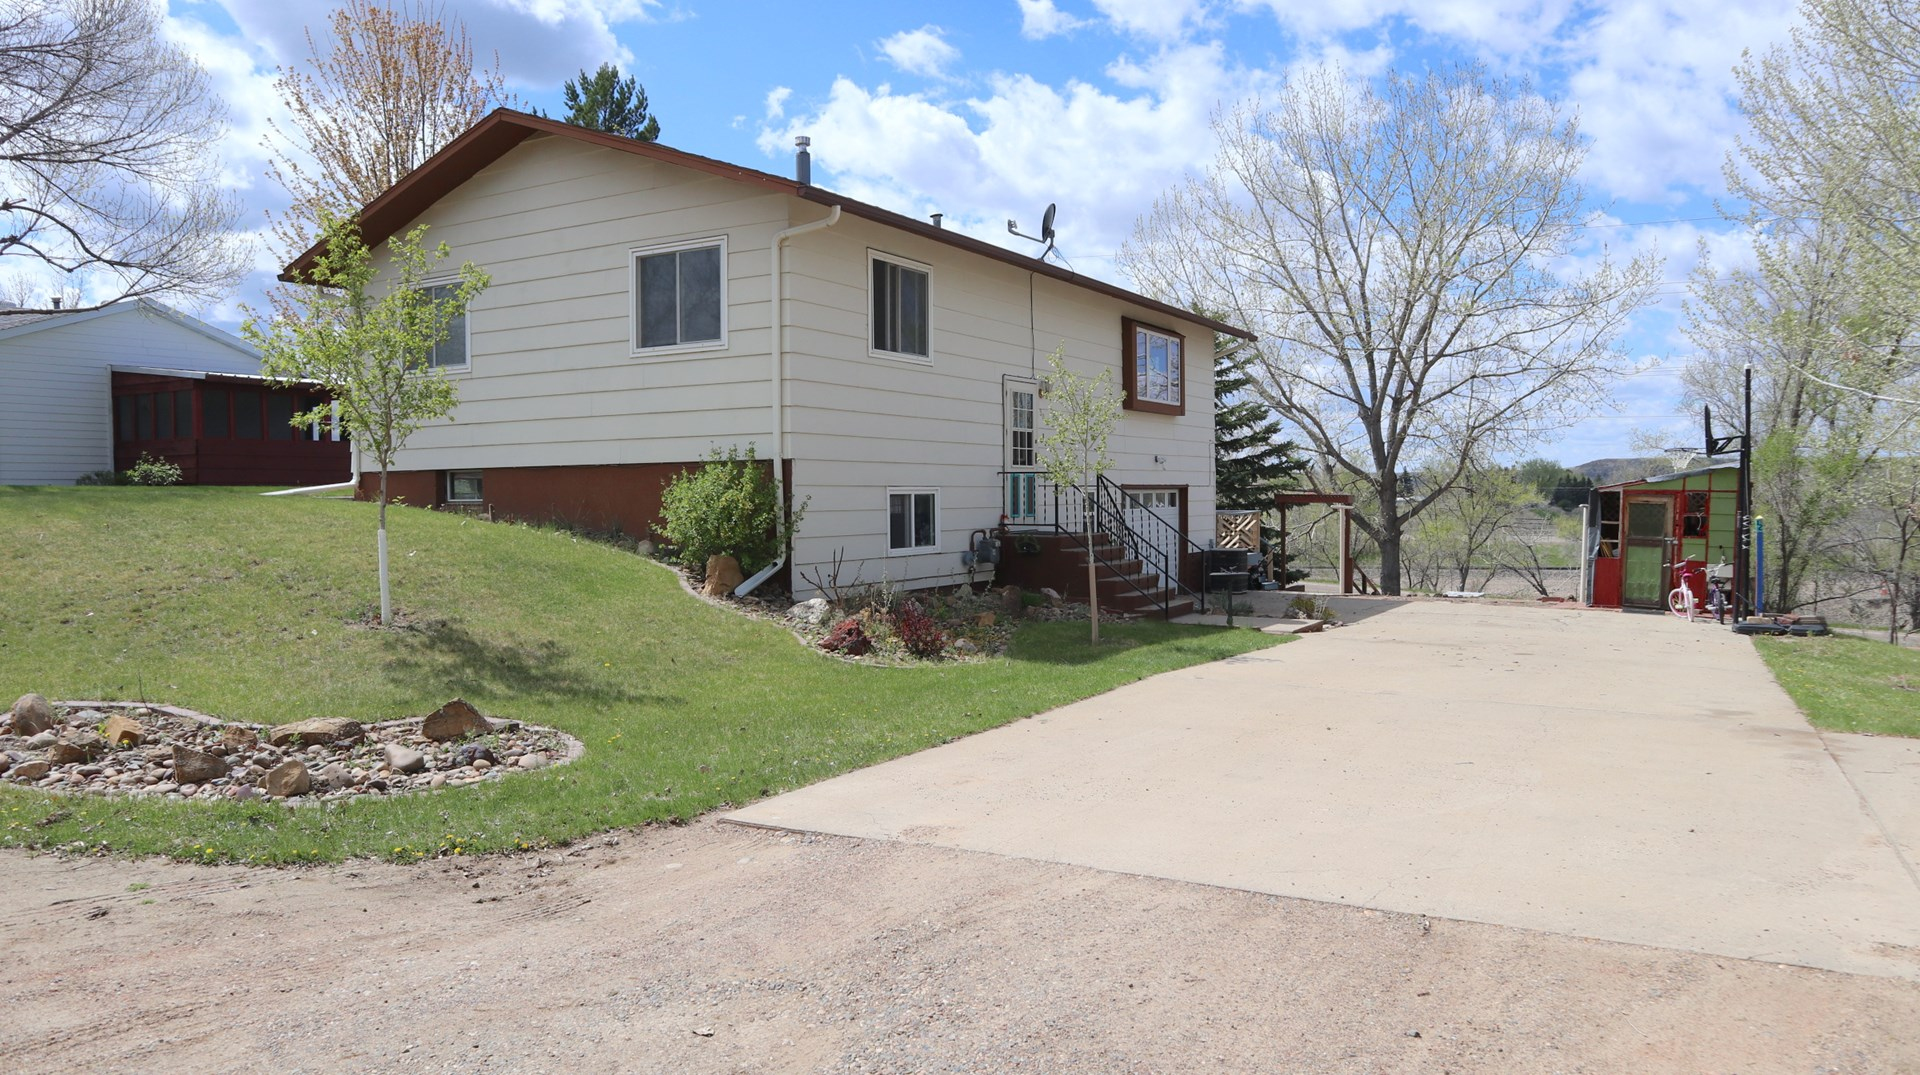 Turn-Key Family Home for Sale in Glendive, MT